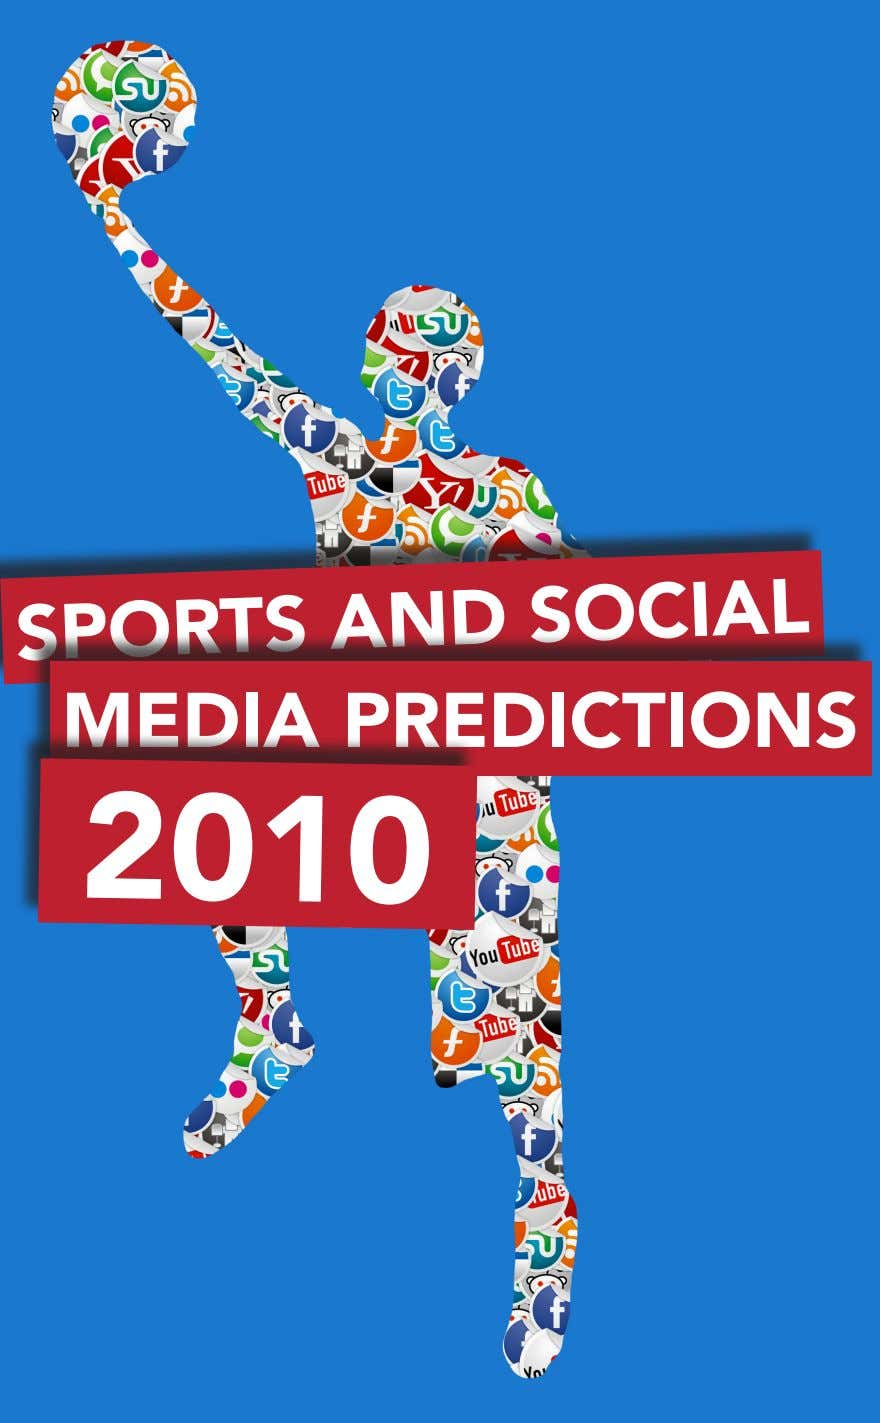 SPORTS AND SOCIAL MEDIA PREDICTIONS